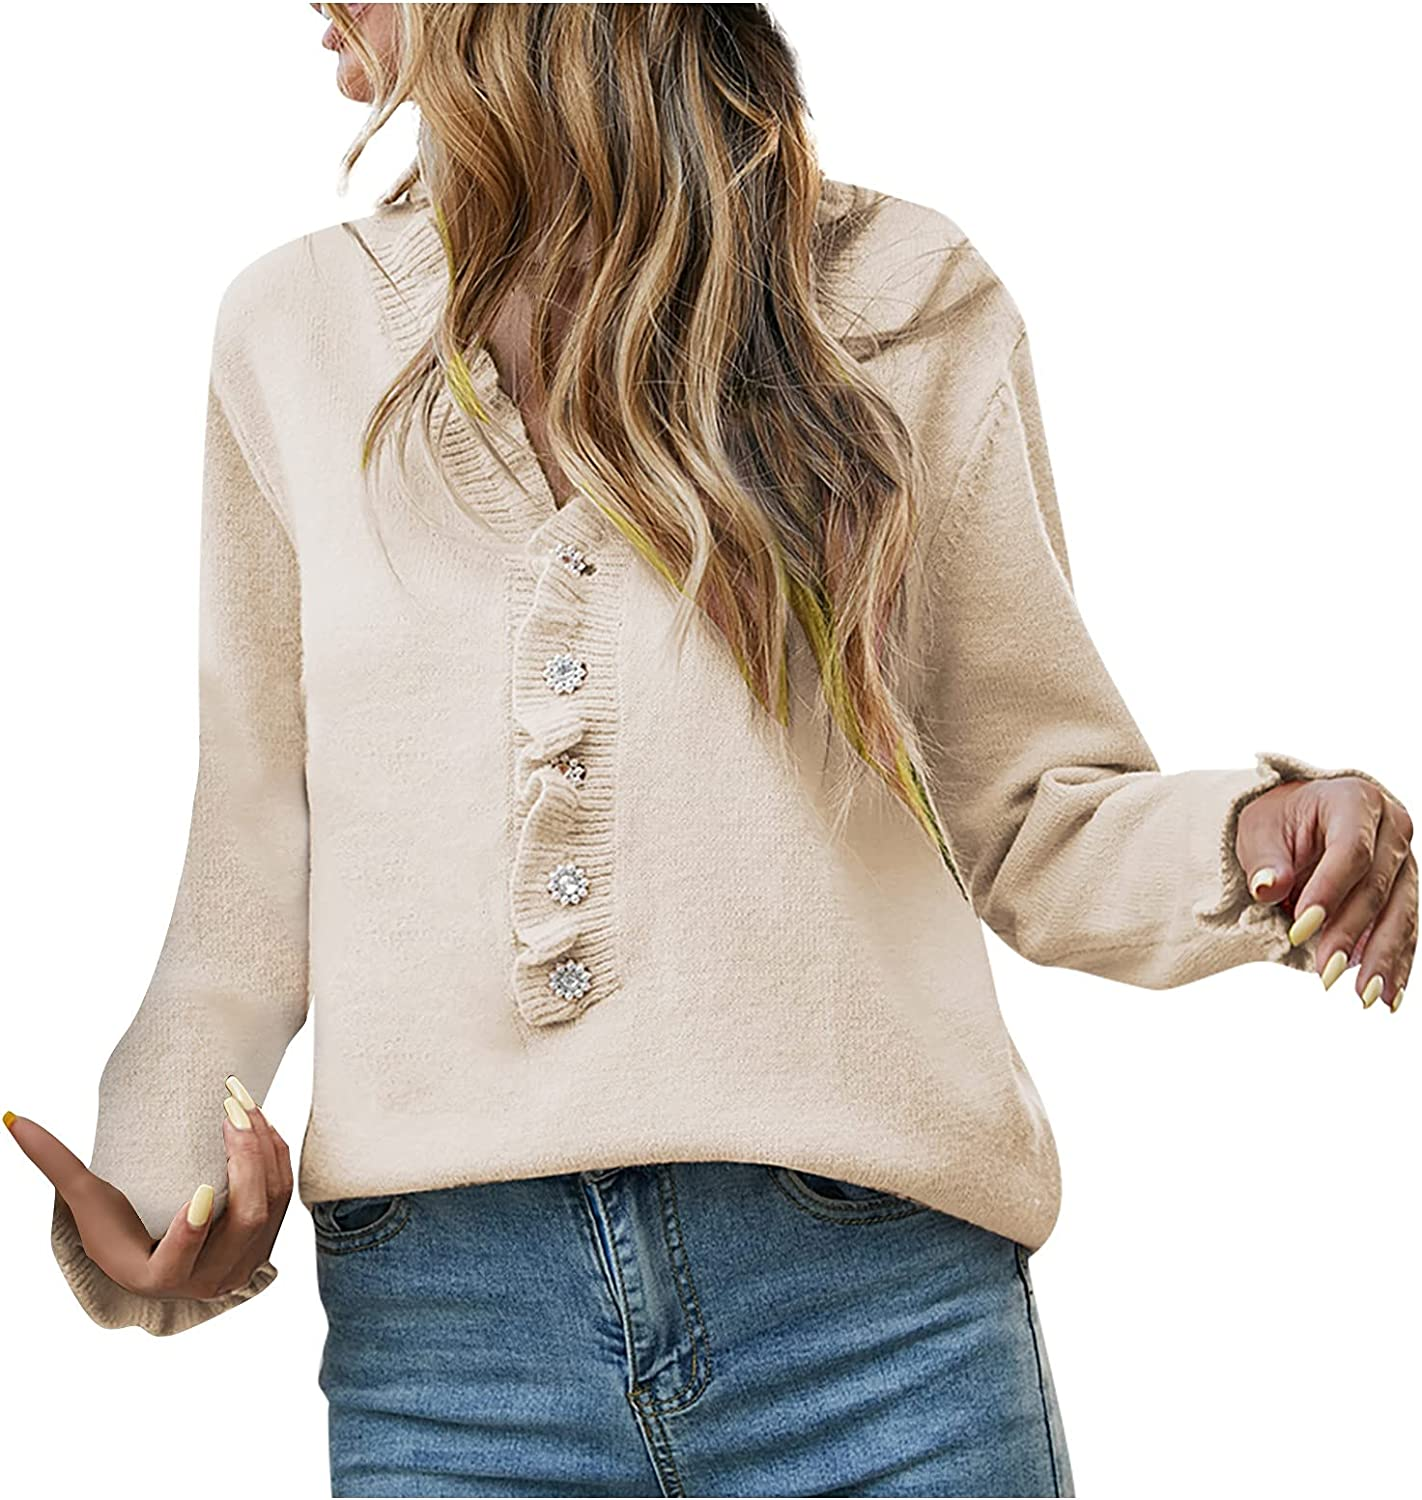 Women's Winter Long-Sleeved Pullover Sweater Casual Loose Sweaters Large Size V-Neck Solid Color Warm Top